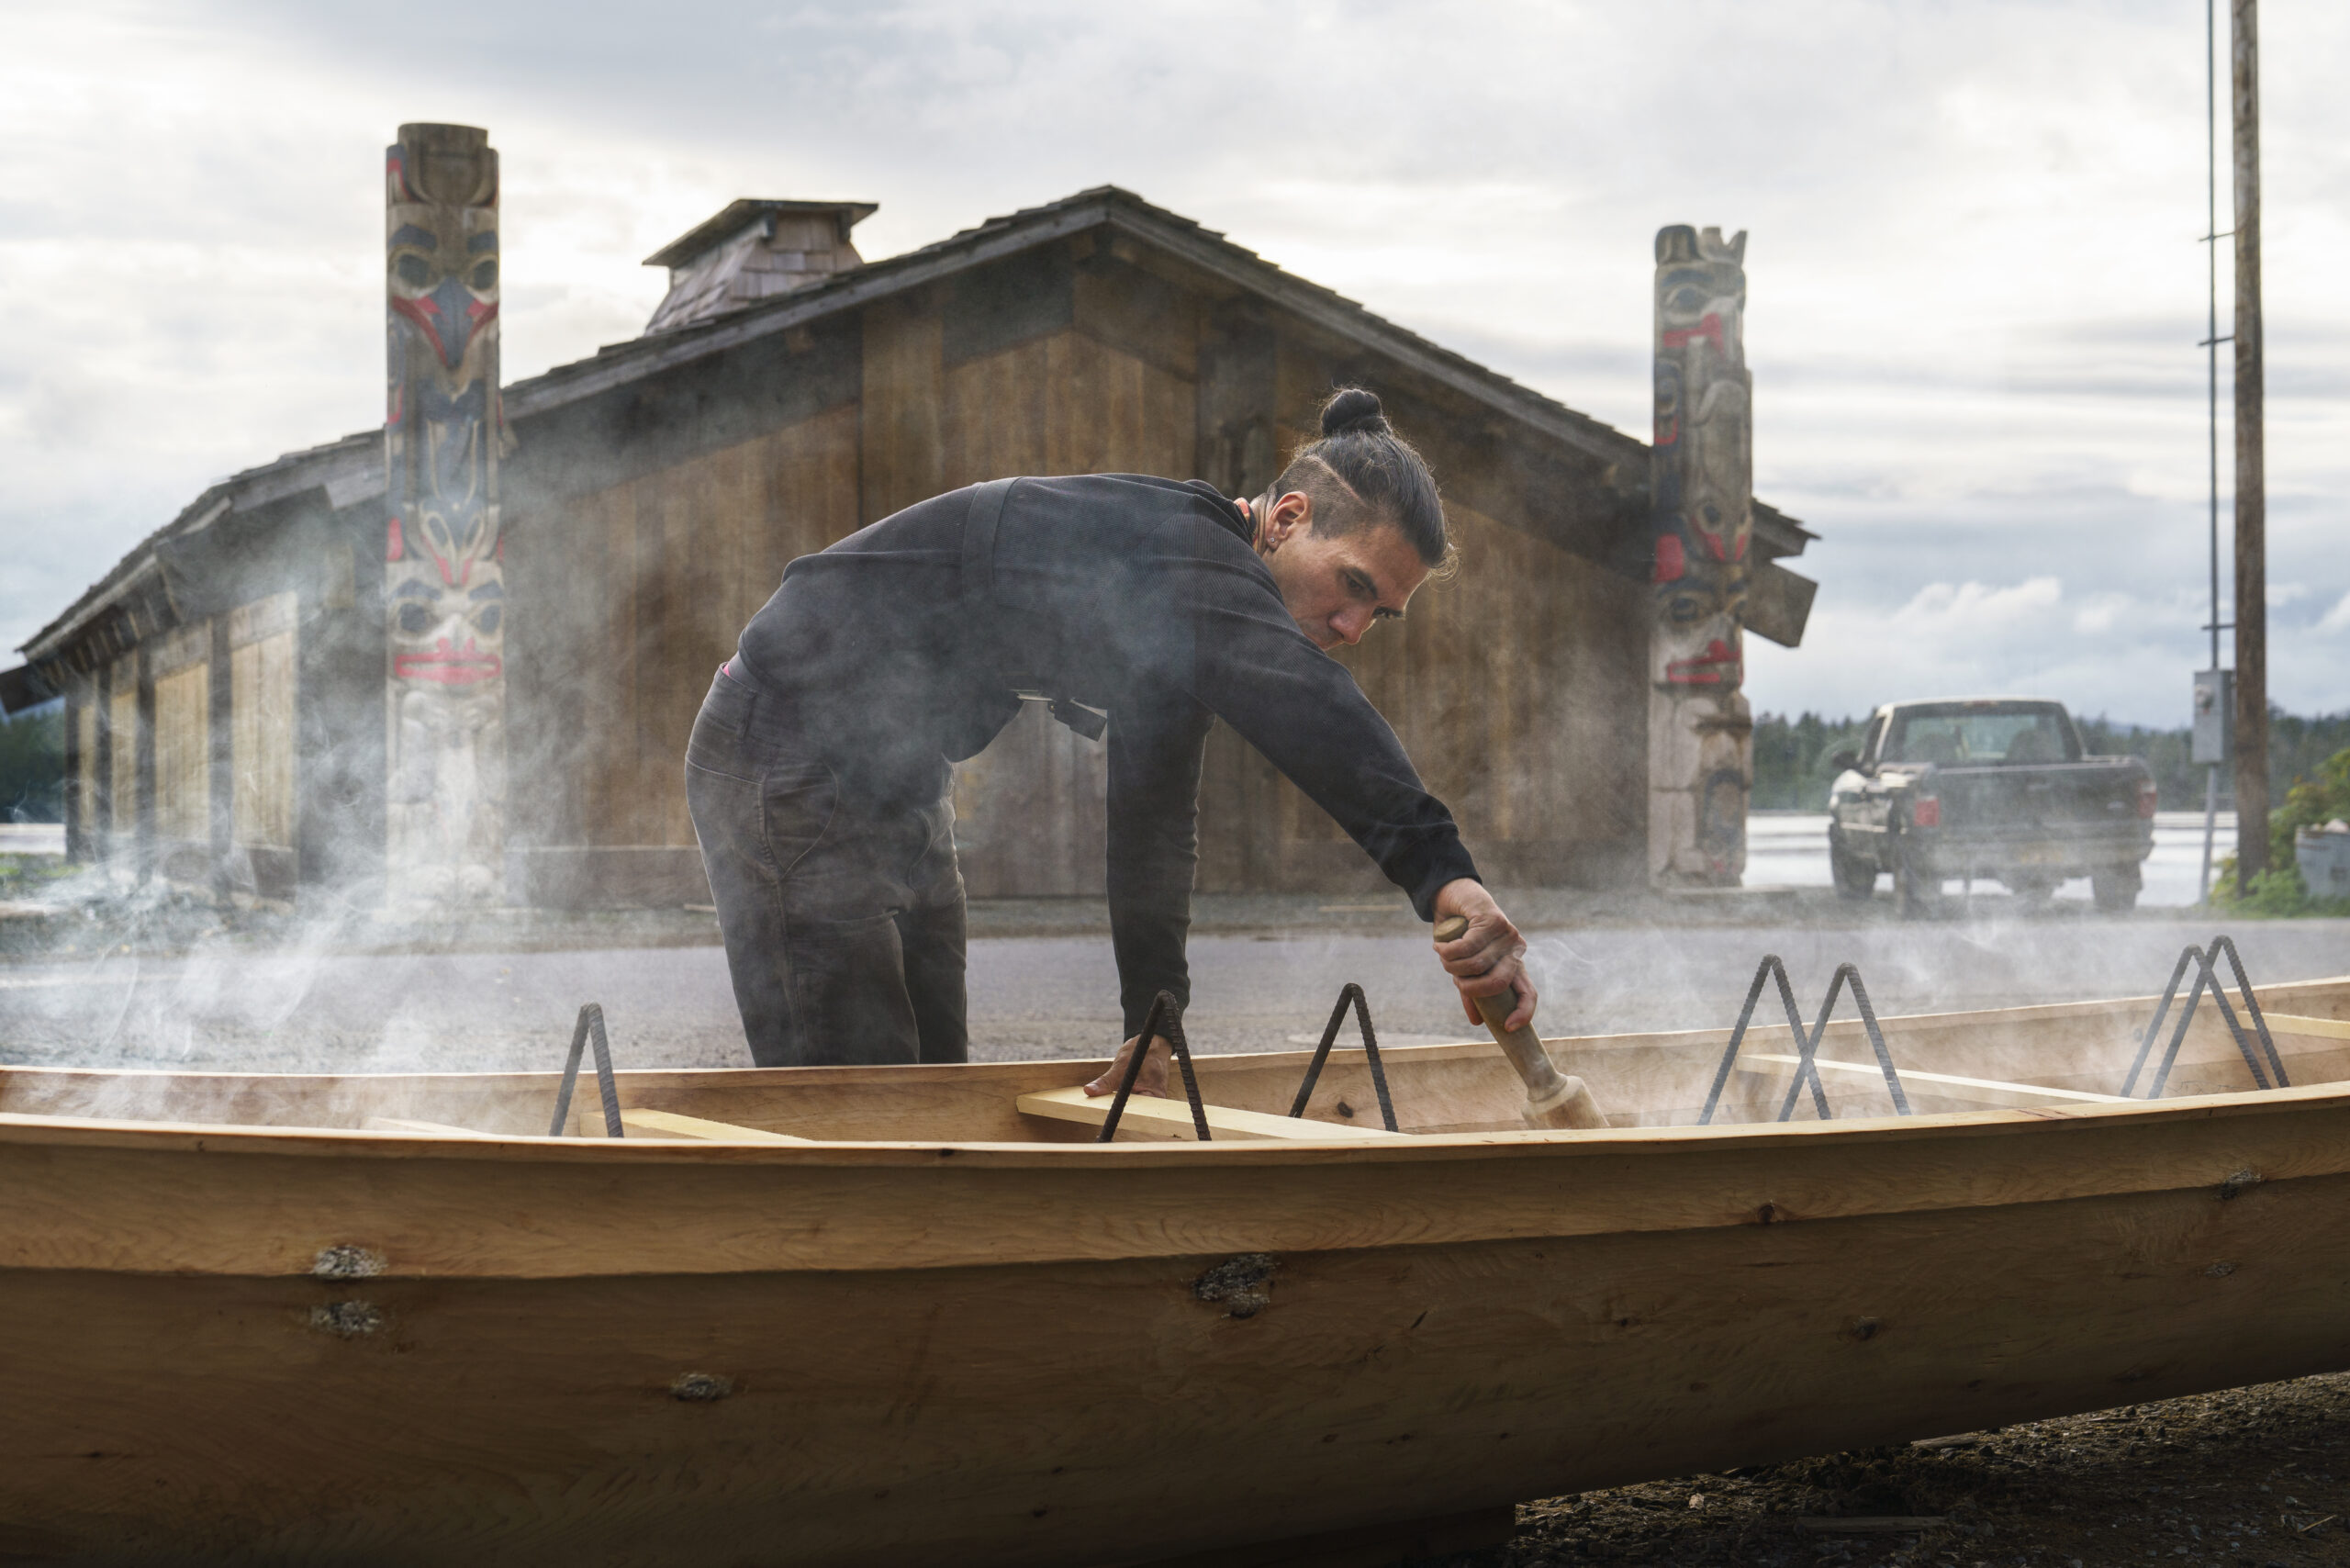 An artist works on a boat. Photography by Fernando Decillis for Smithsonian Magazine